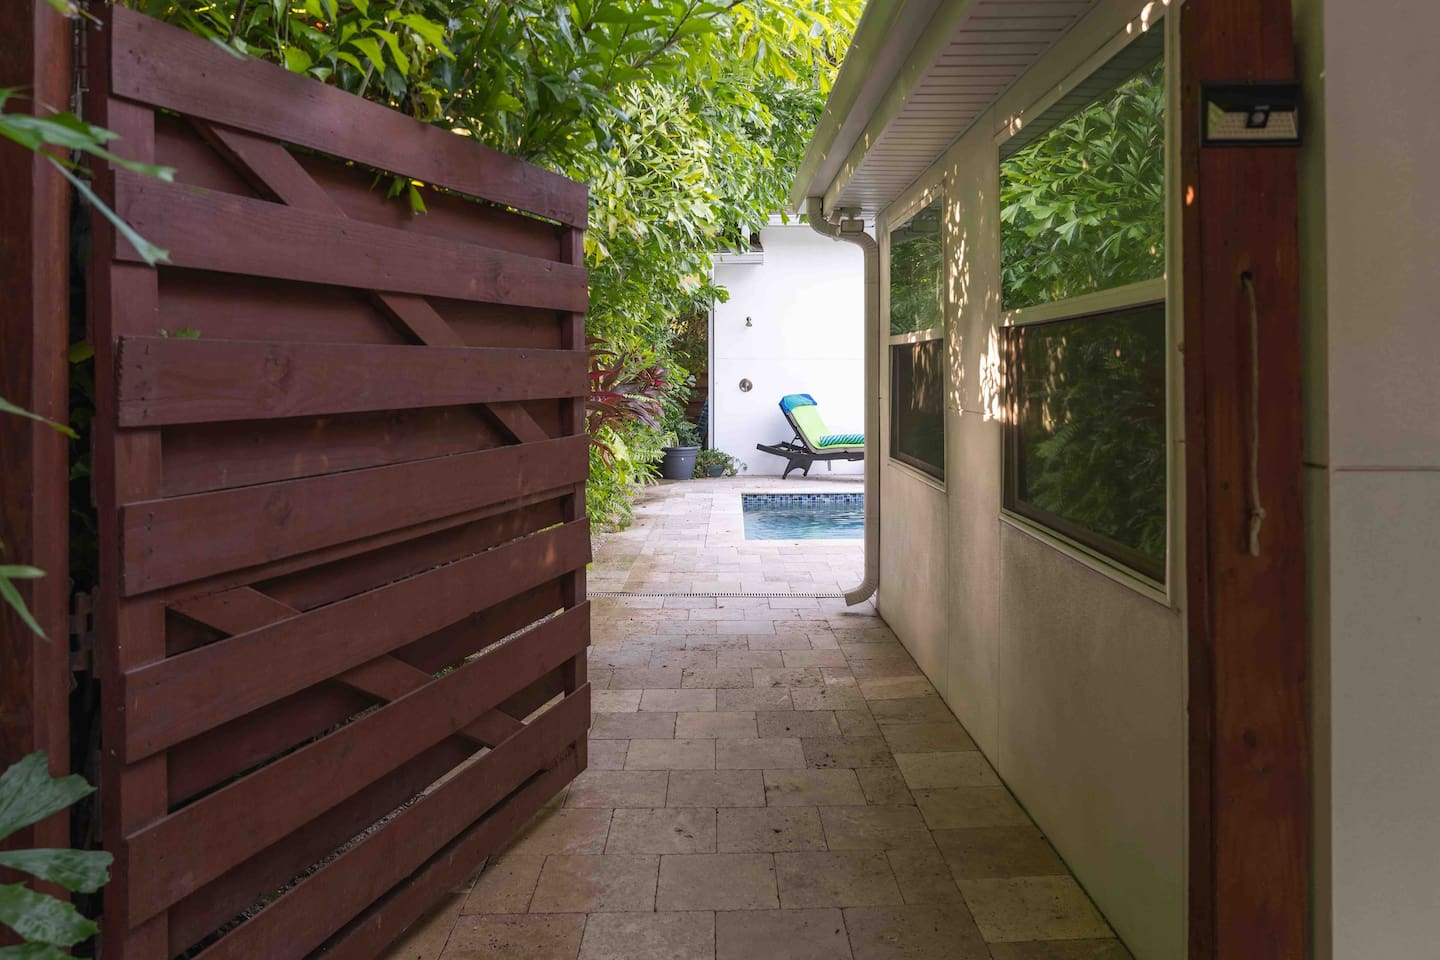 Gateway and walkway to Bungalow, Patio and Pool area.